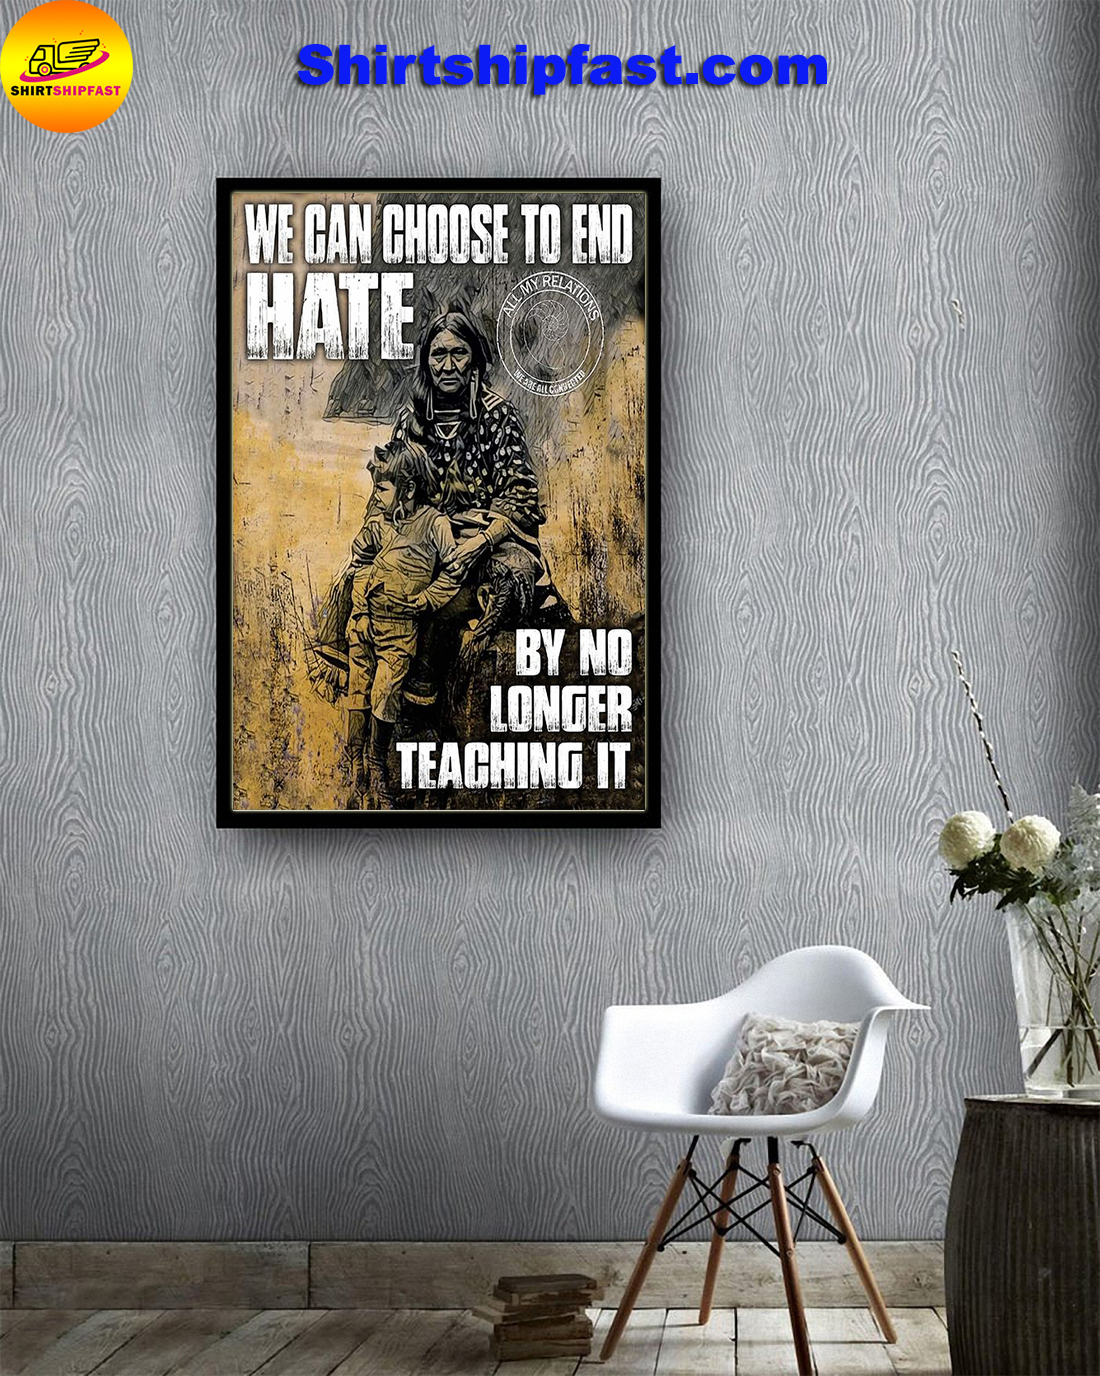 We can choose to end hate by no longer teaching it poster - Picture 2